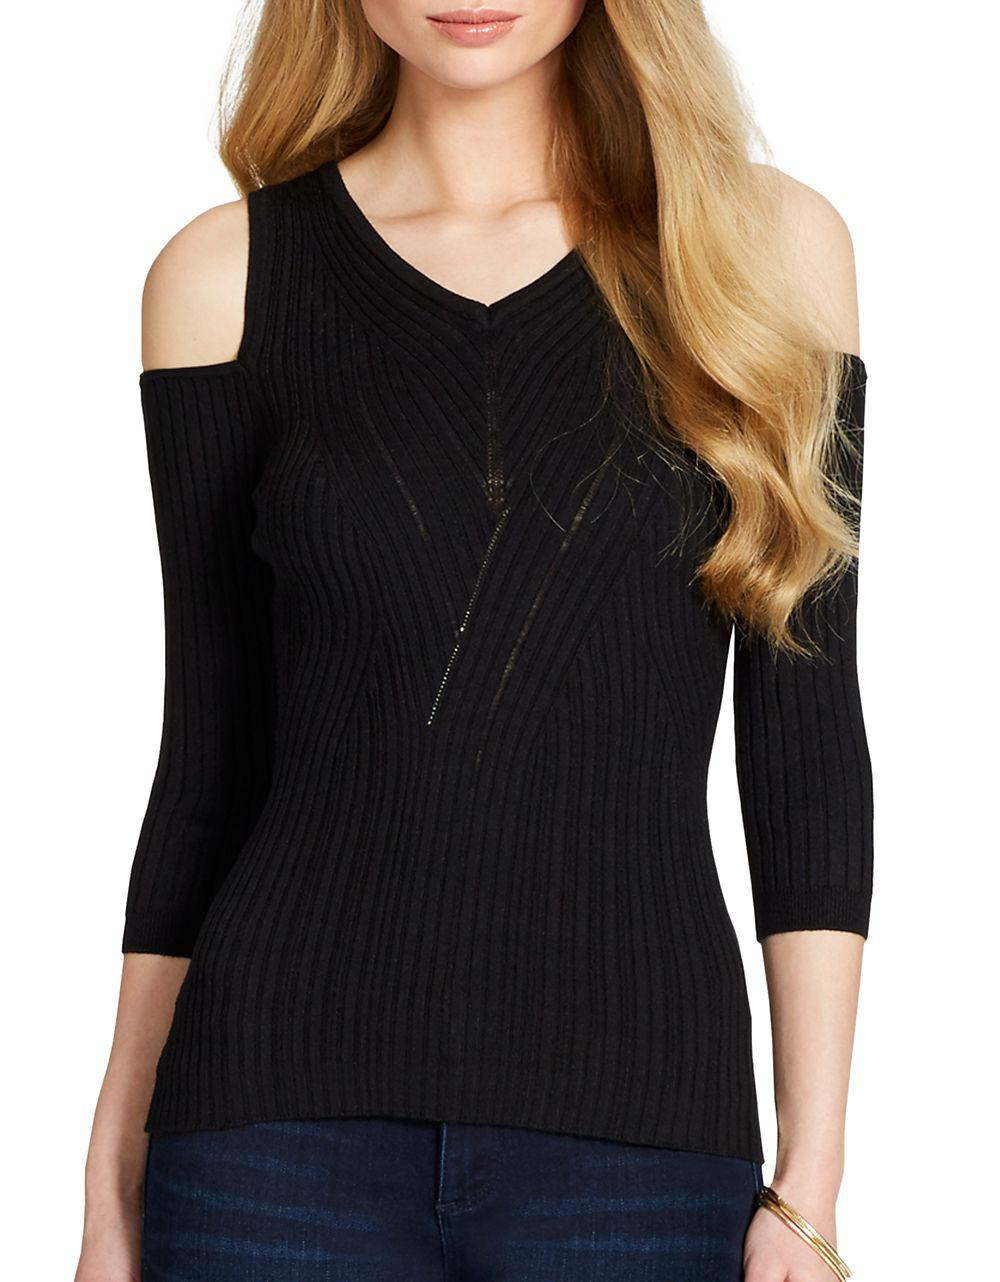 2be8b95ca12 Lyst - Jessica Simpson Cold-shoulder Sweater in Black